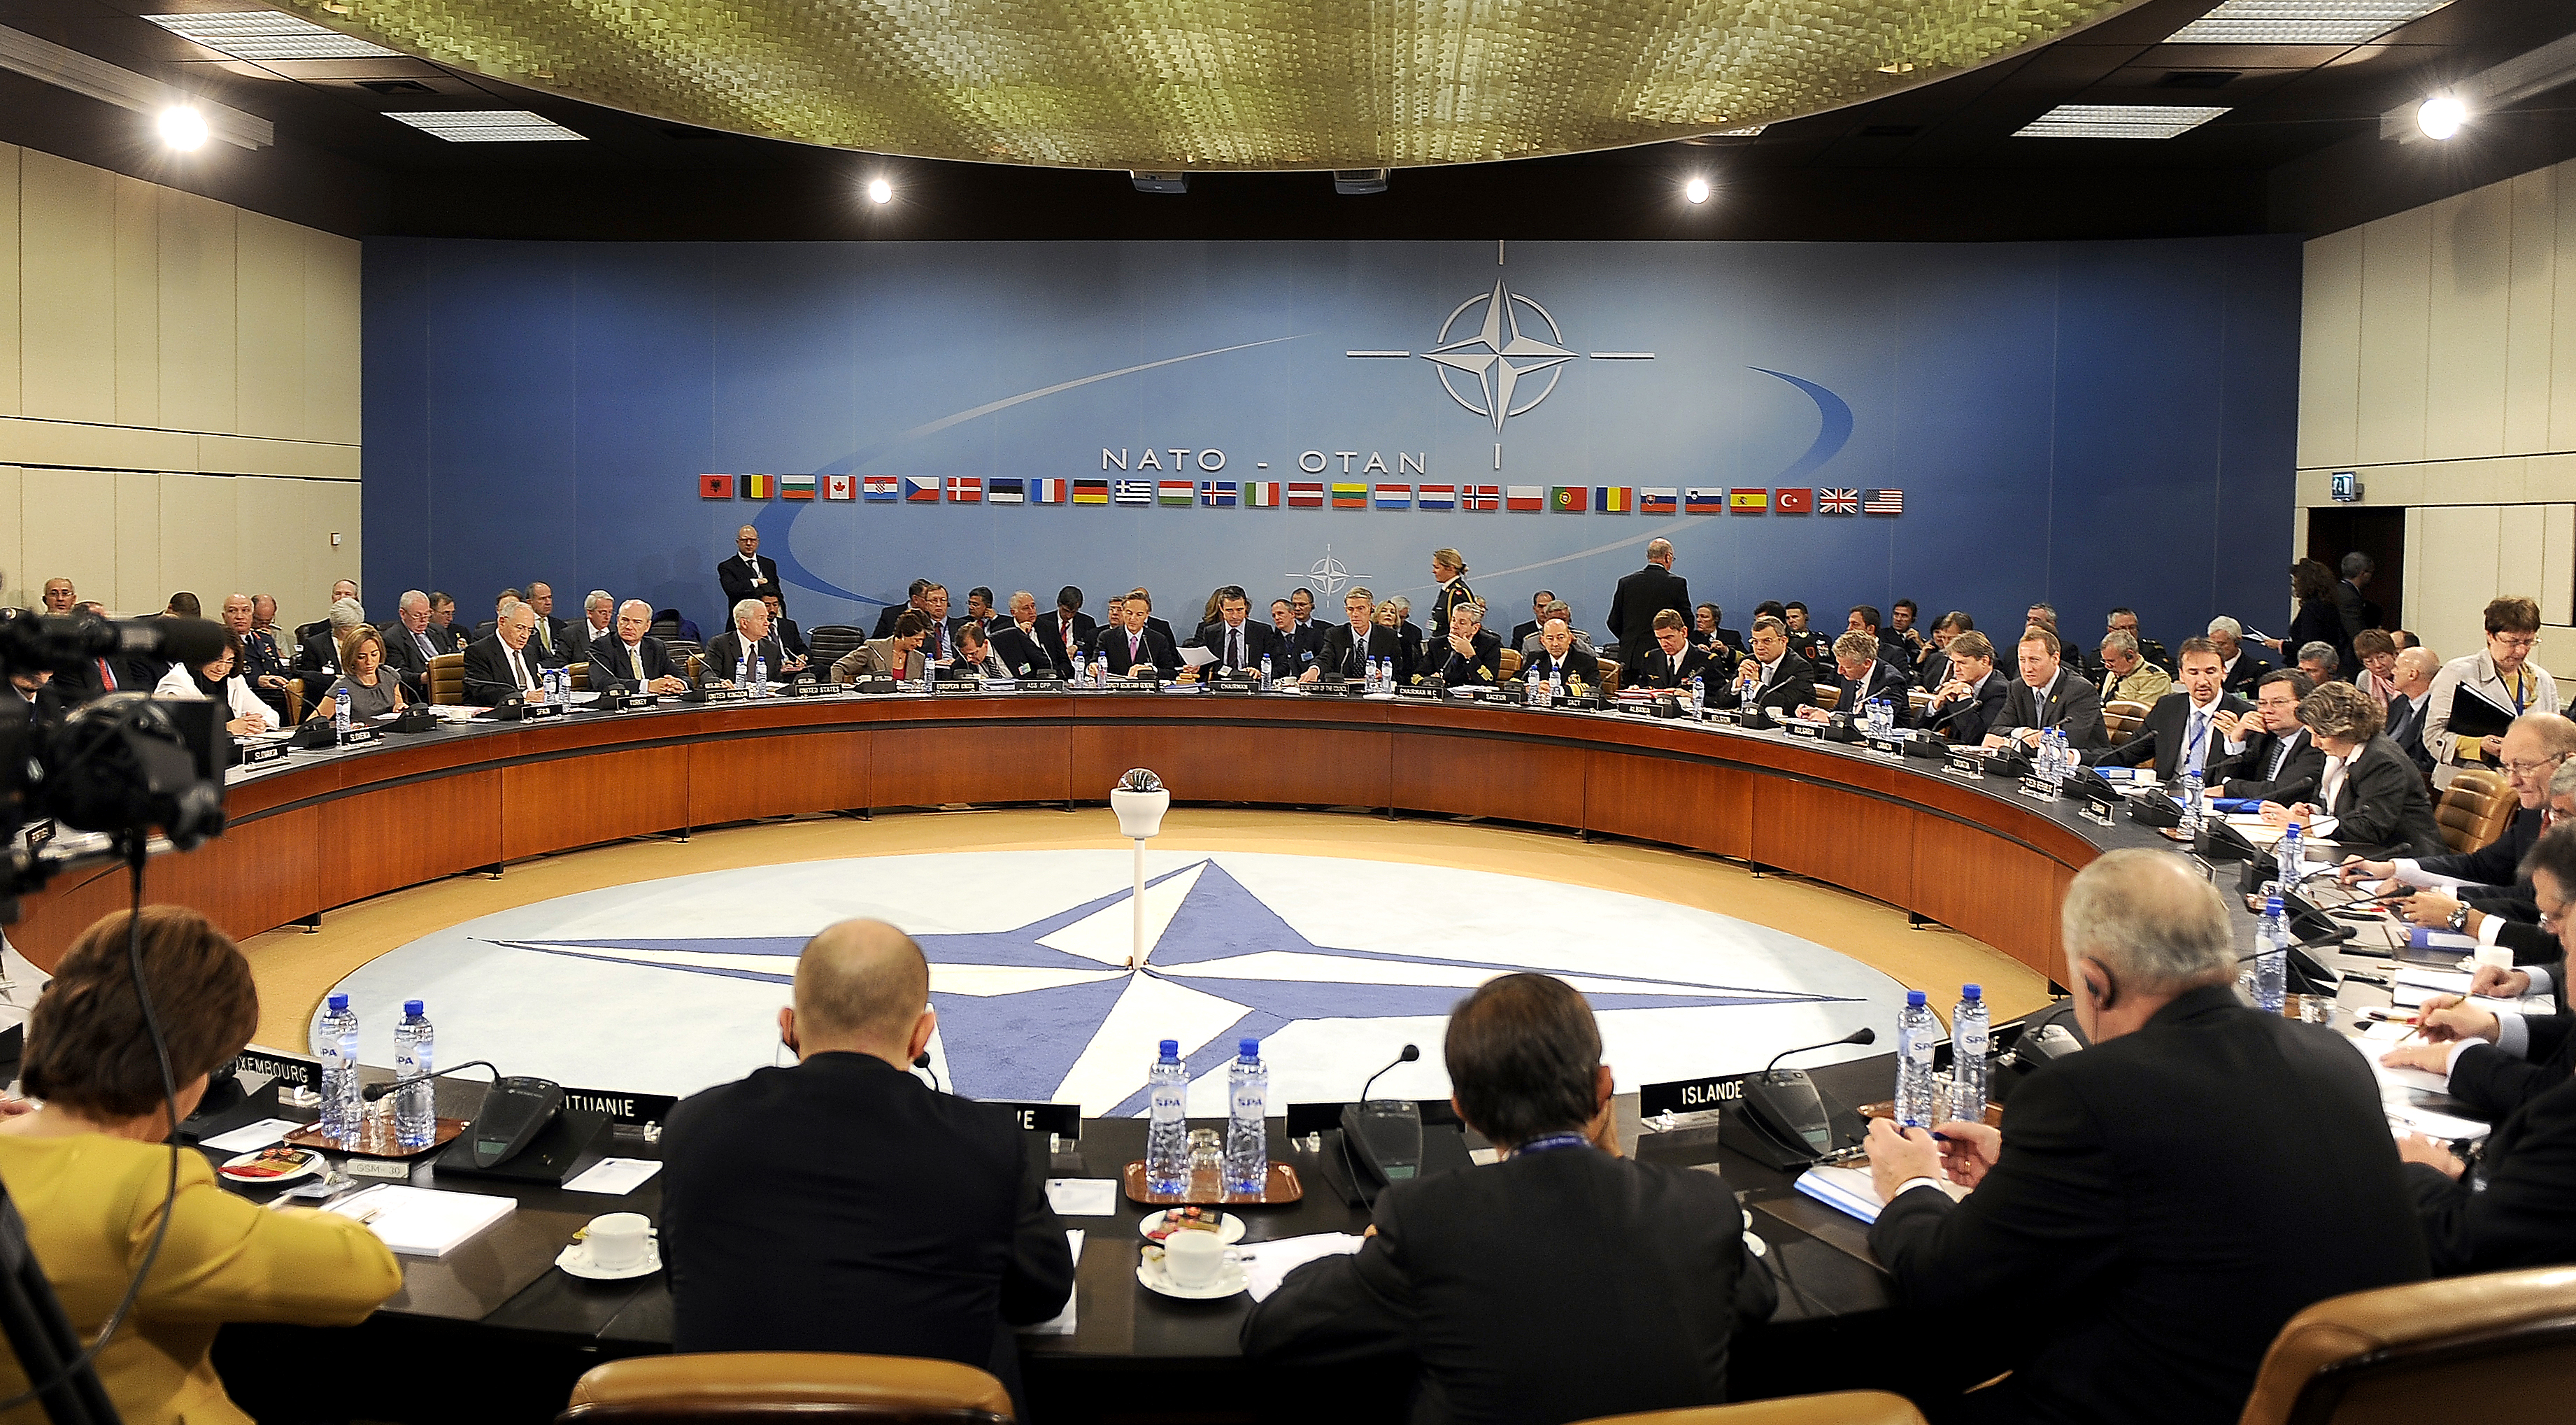 Members of NATO Ministers of Defense and of Foreign Affairs meet at NATO headquarters in Brussels, Belgium. October 14, 2010.